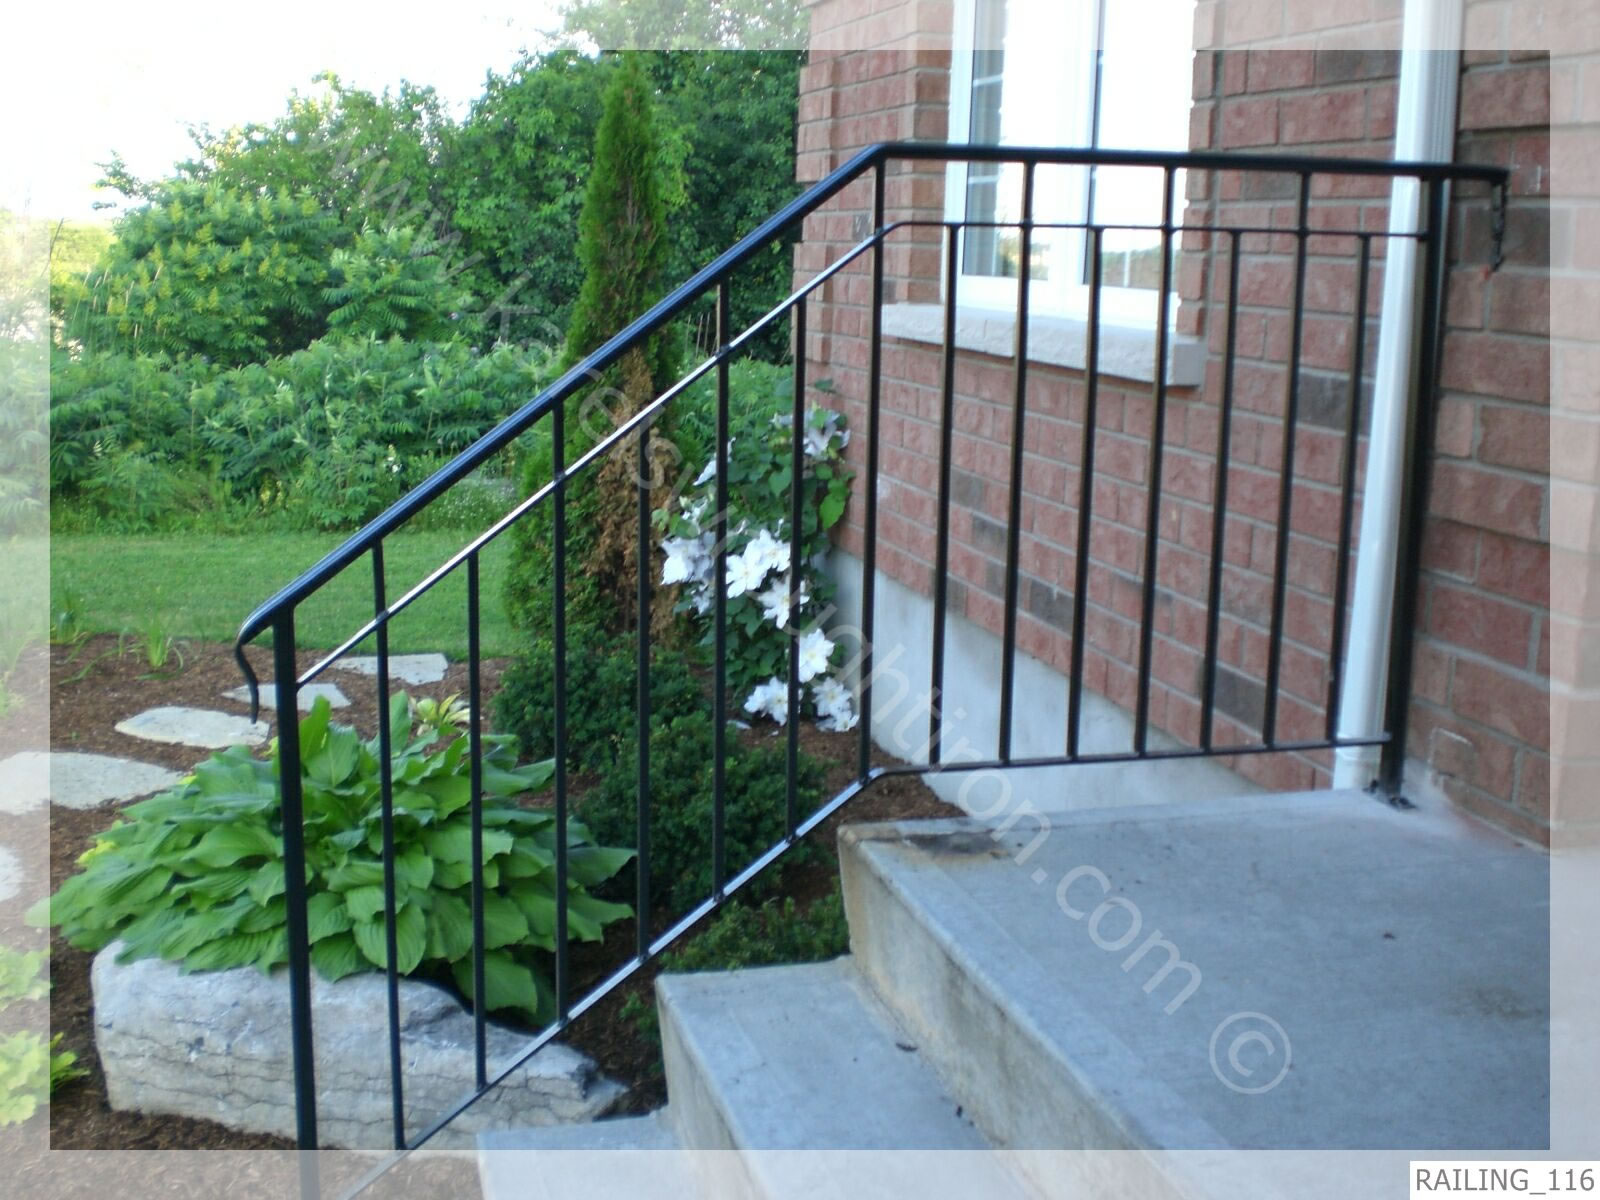 Wrought Iron Railings Related Keywords Suggestions Wrought Iron Raili